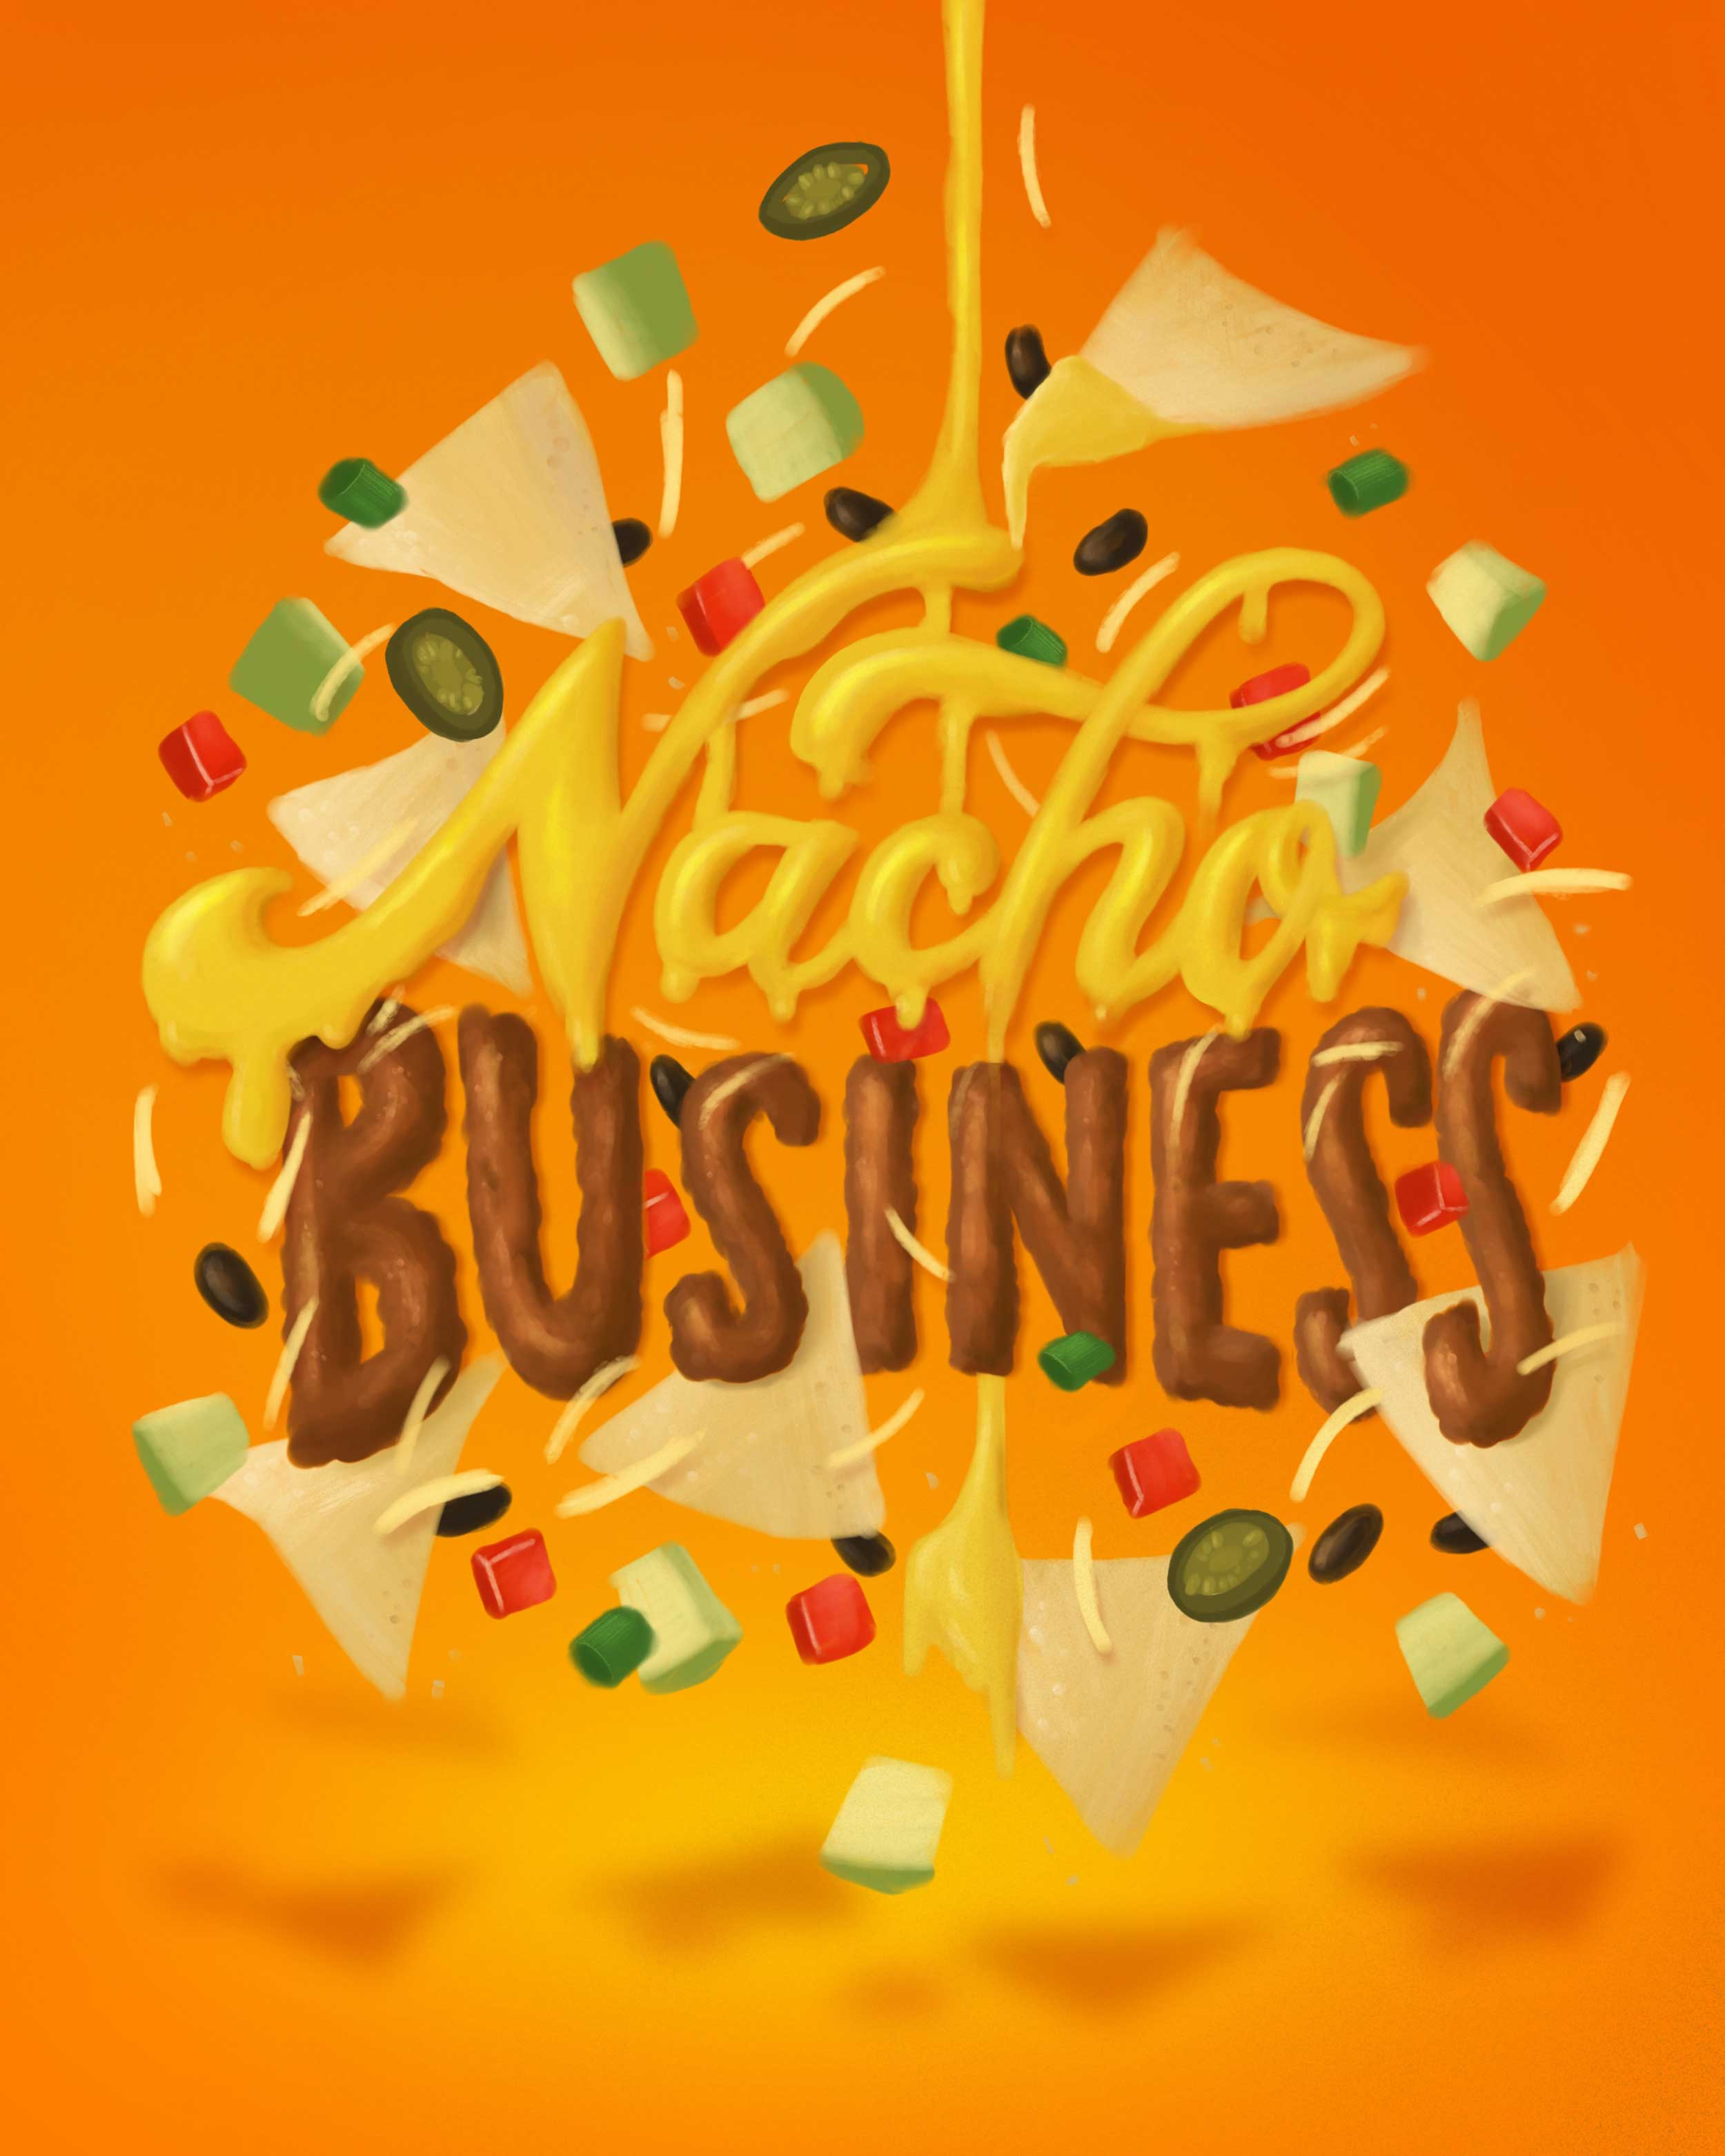 nacho-business-food-lettering